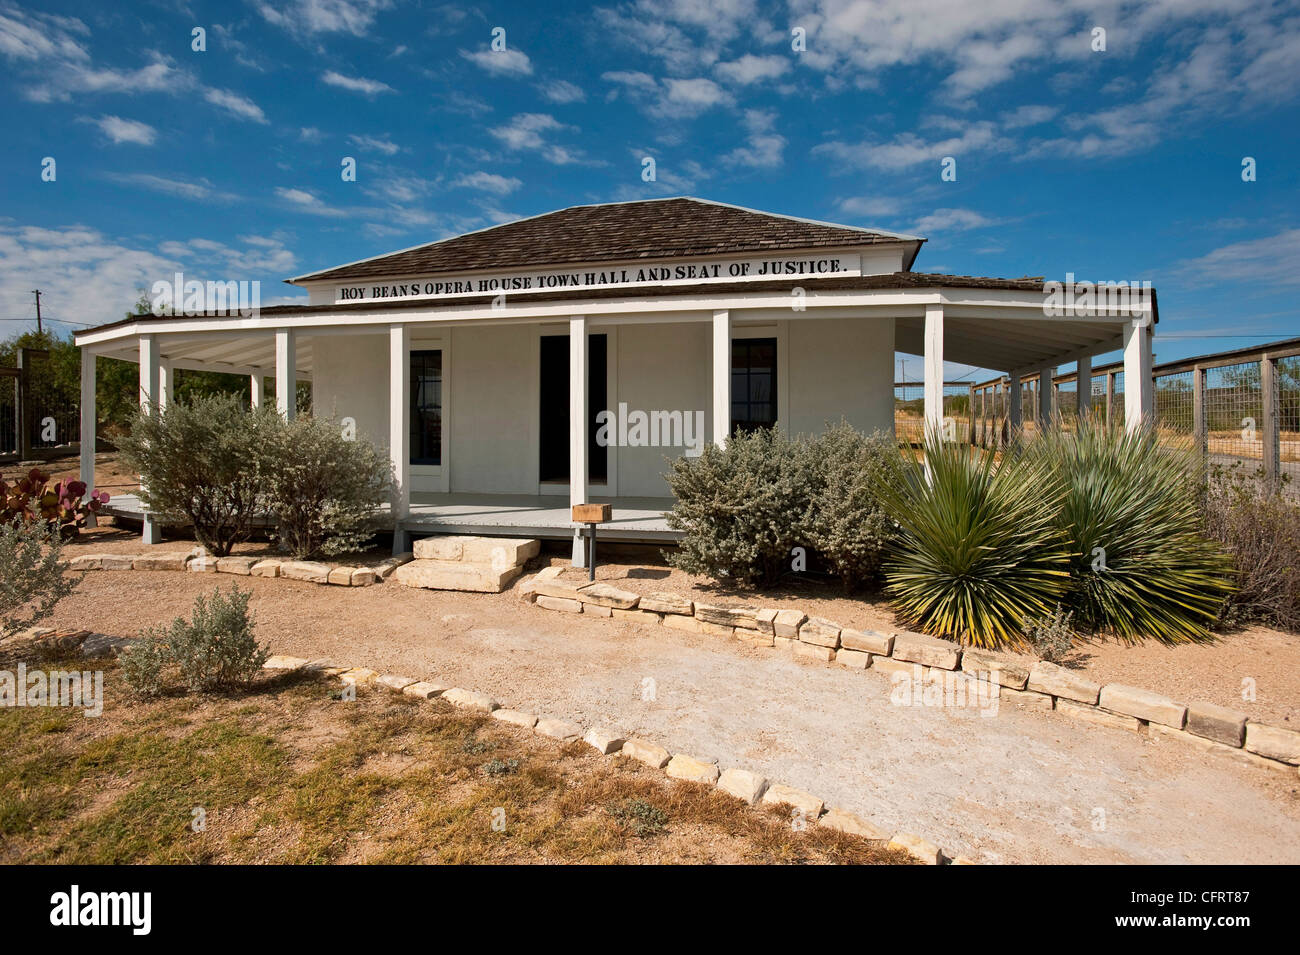 USA, Texas, Langtry, Judge Roy Bean Residence, Opera House, Town Hall and Seat Of Justice,. PLEASE CALL FOR SUPER Stock Photo